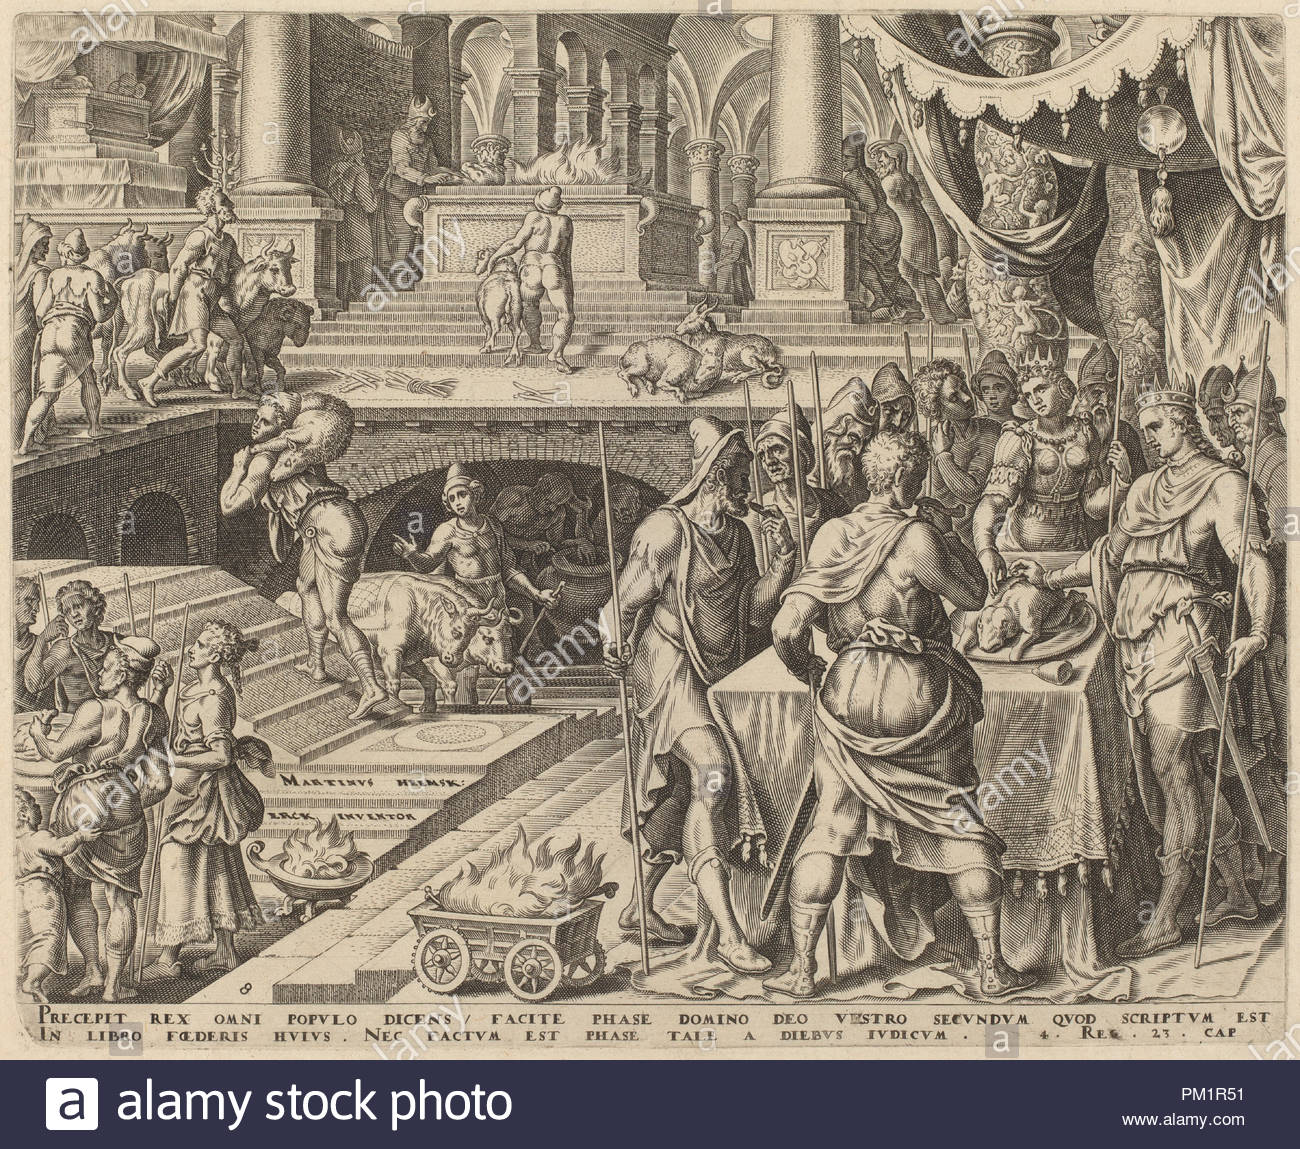 Dated: 1569. Medium: engraving. Museum: National Gallery of Art, Washington  DC. Author: Philip Galle.